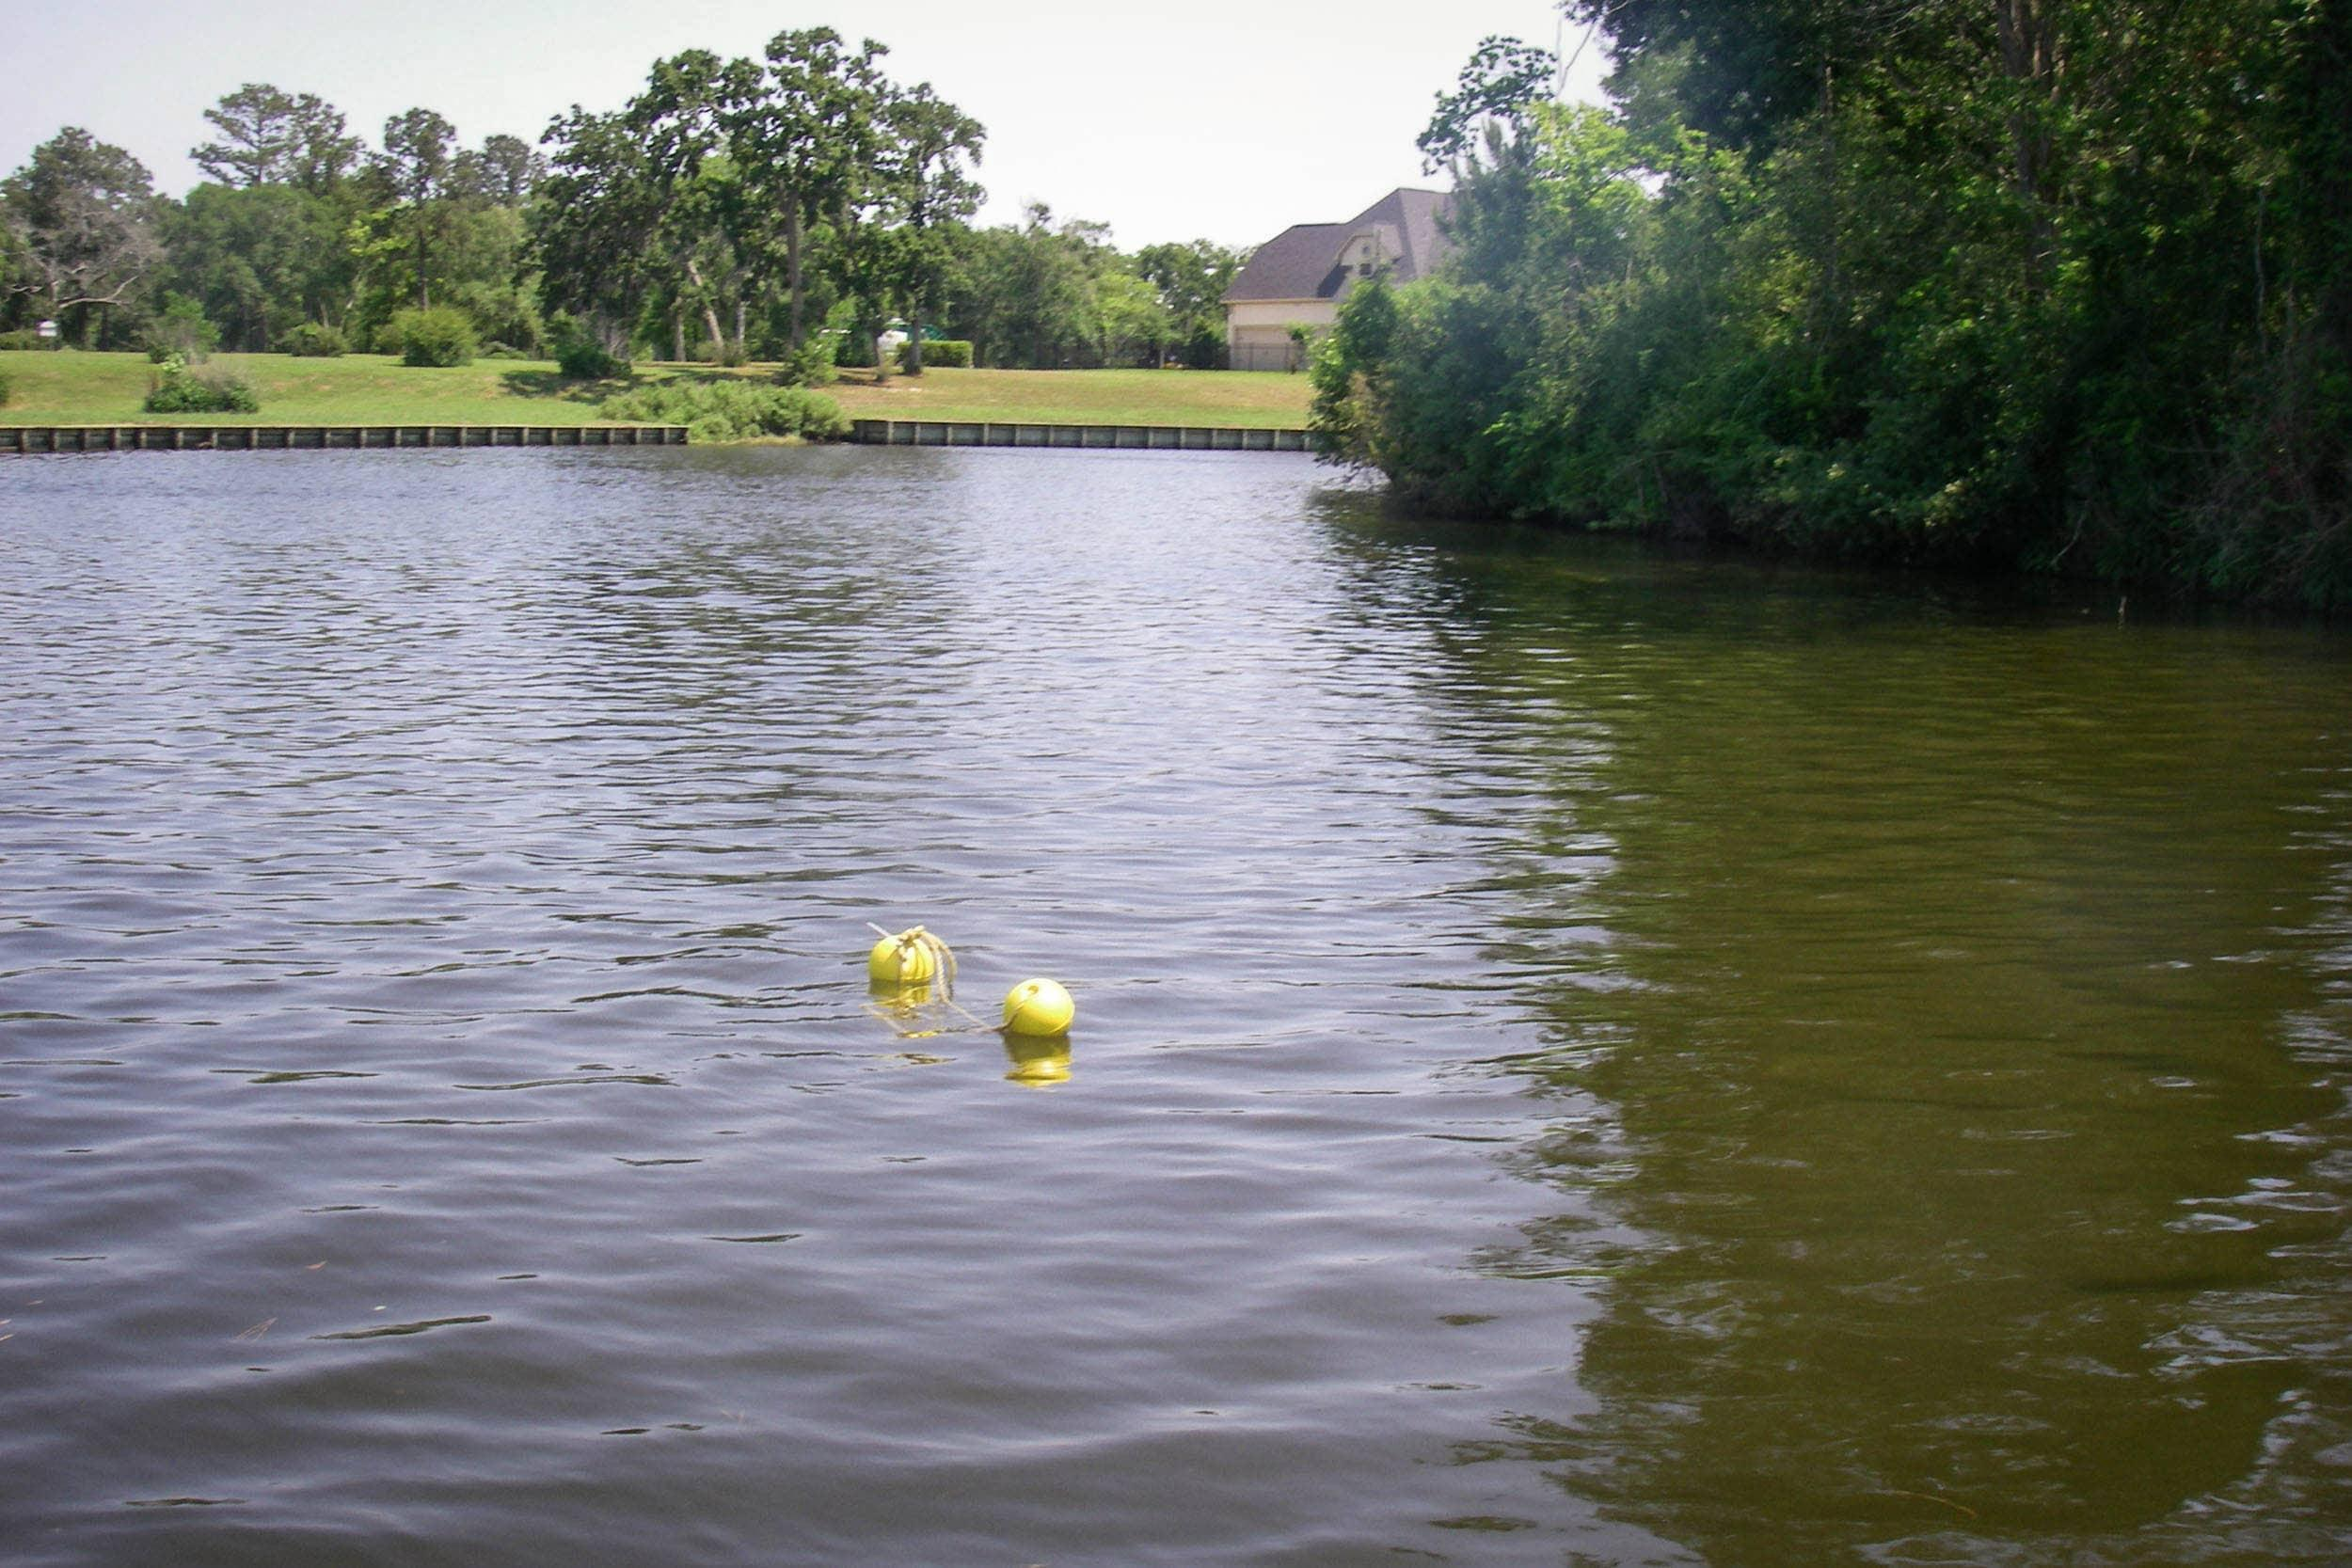 Samplers were suspended near the sediment/water interface by attaching them to a line that had floats on the surface and a weight at the bottom to keep the samplers vertical.